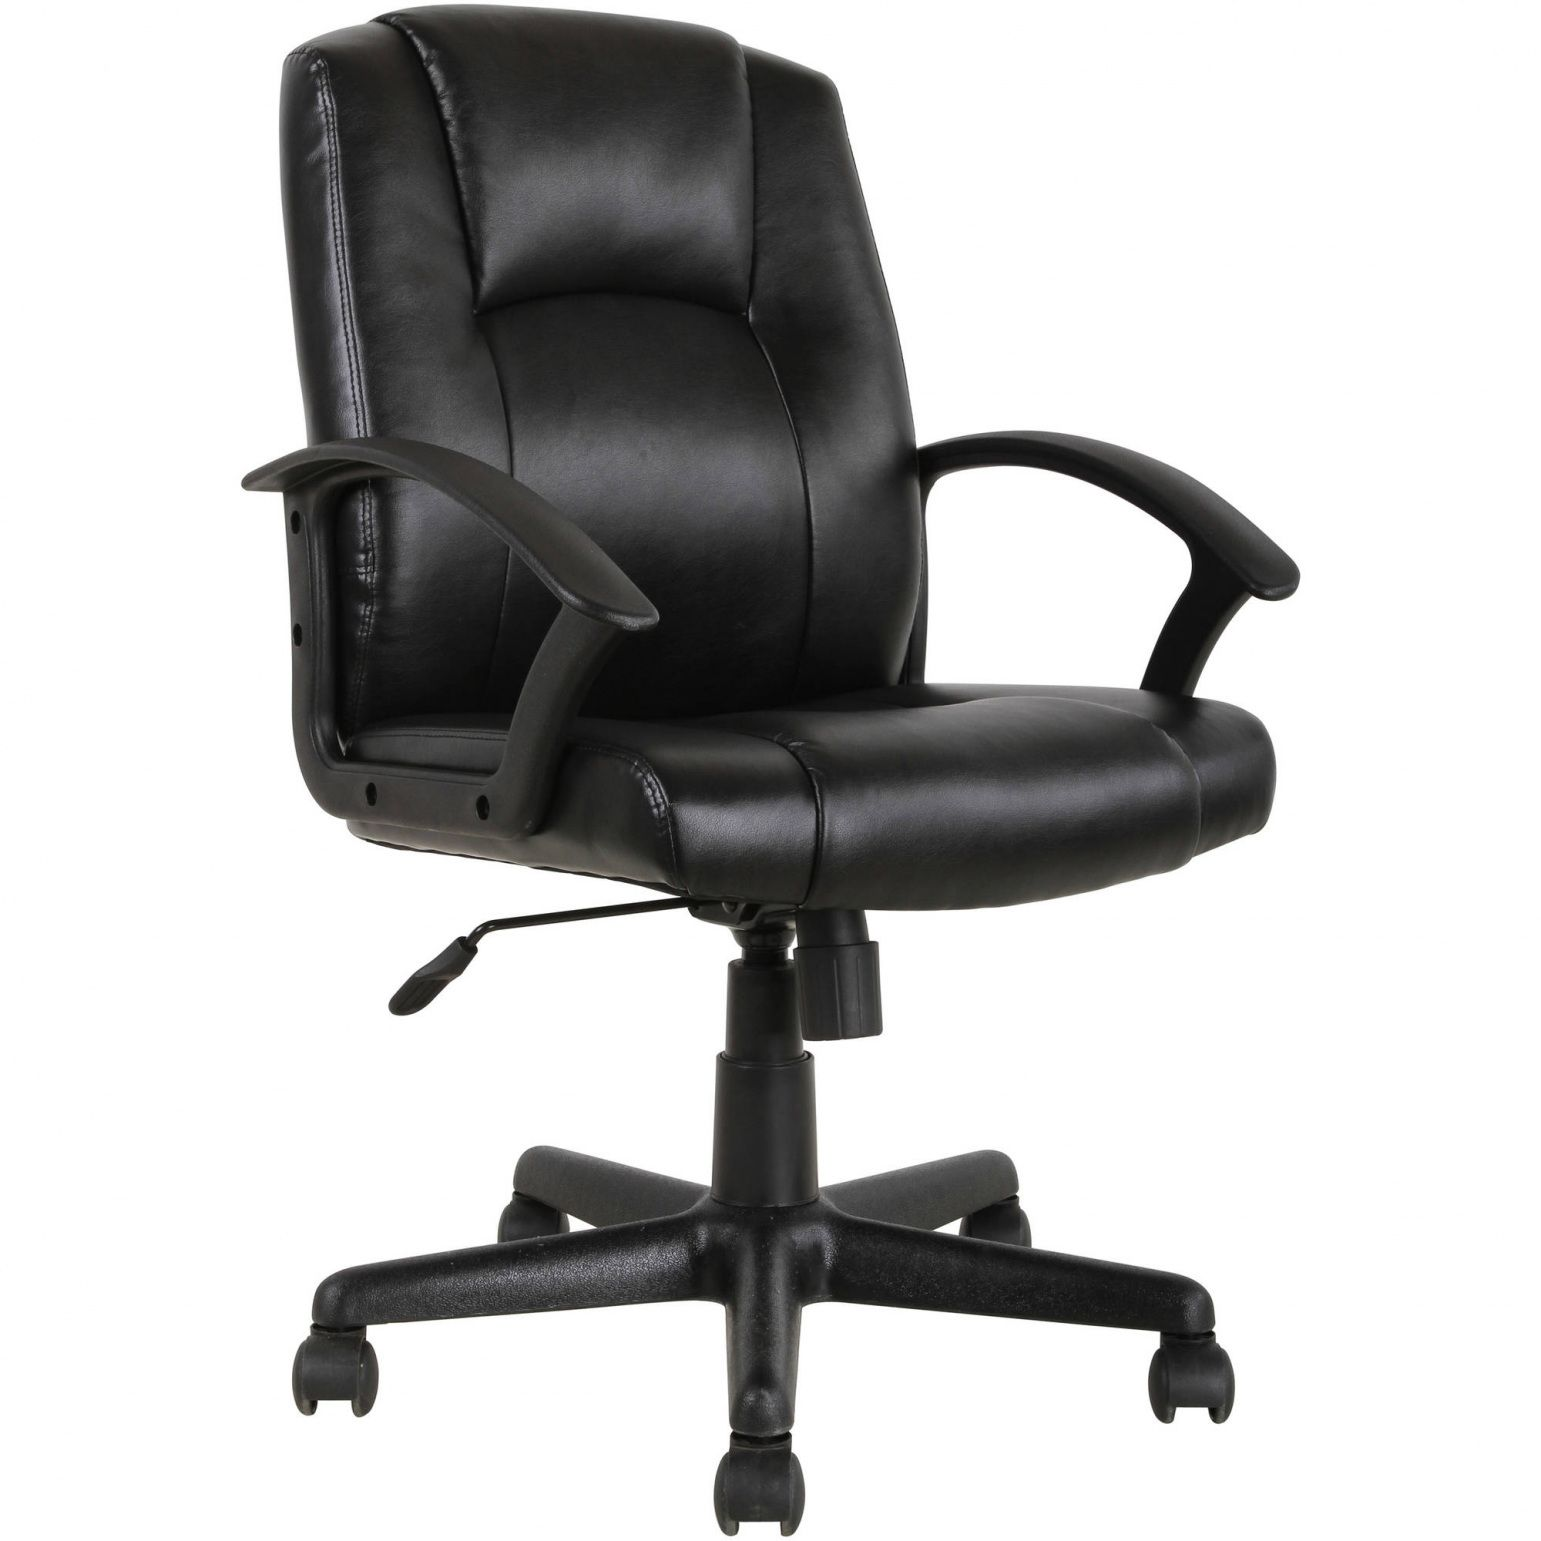 Office Chairs Walmart >> Pin By Erlangfahresi On Desk Office Design Office Chairs